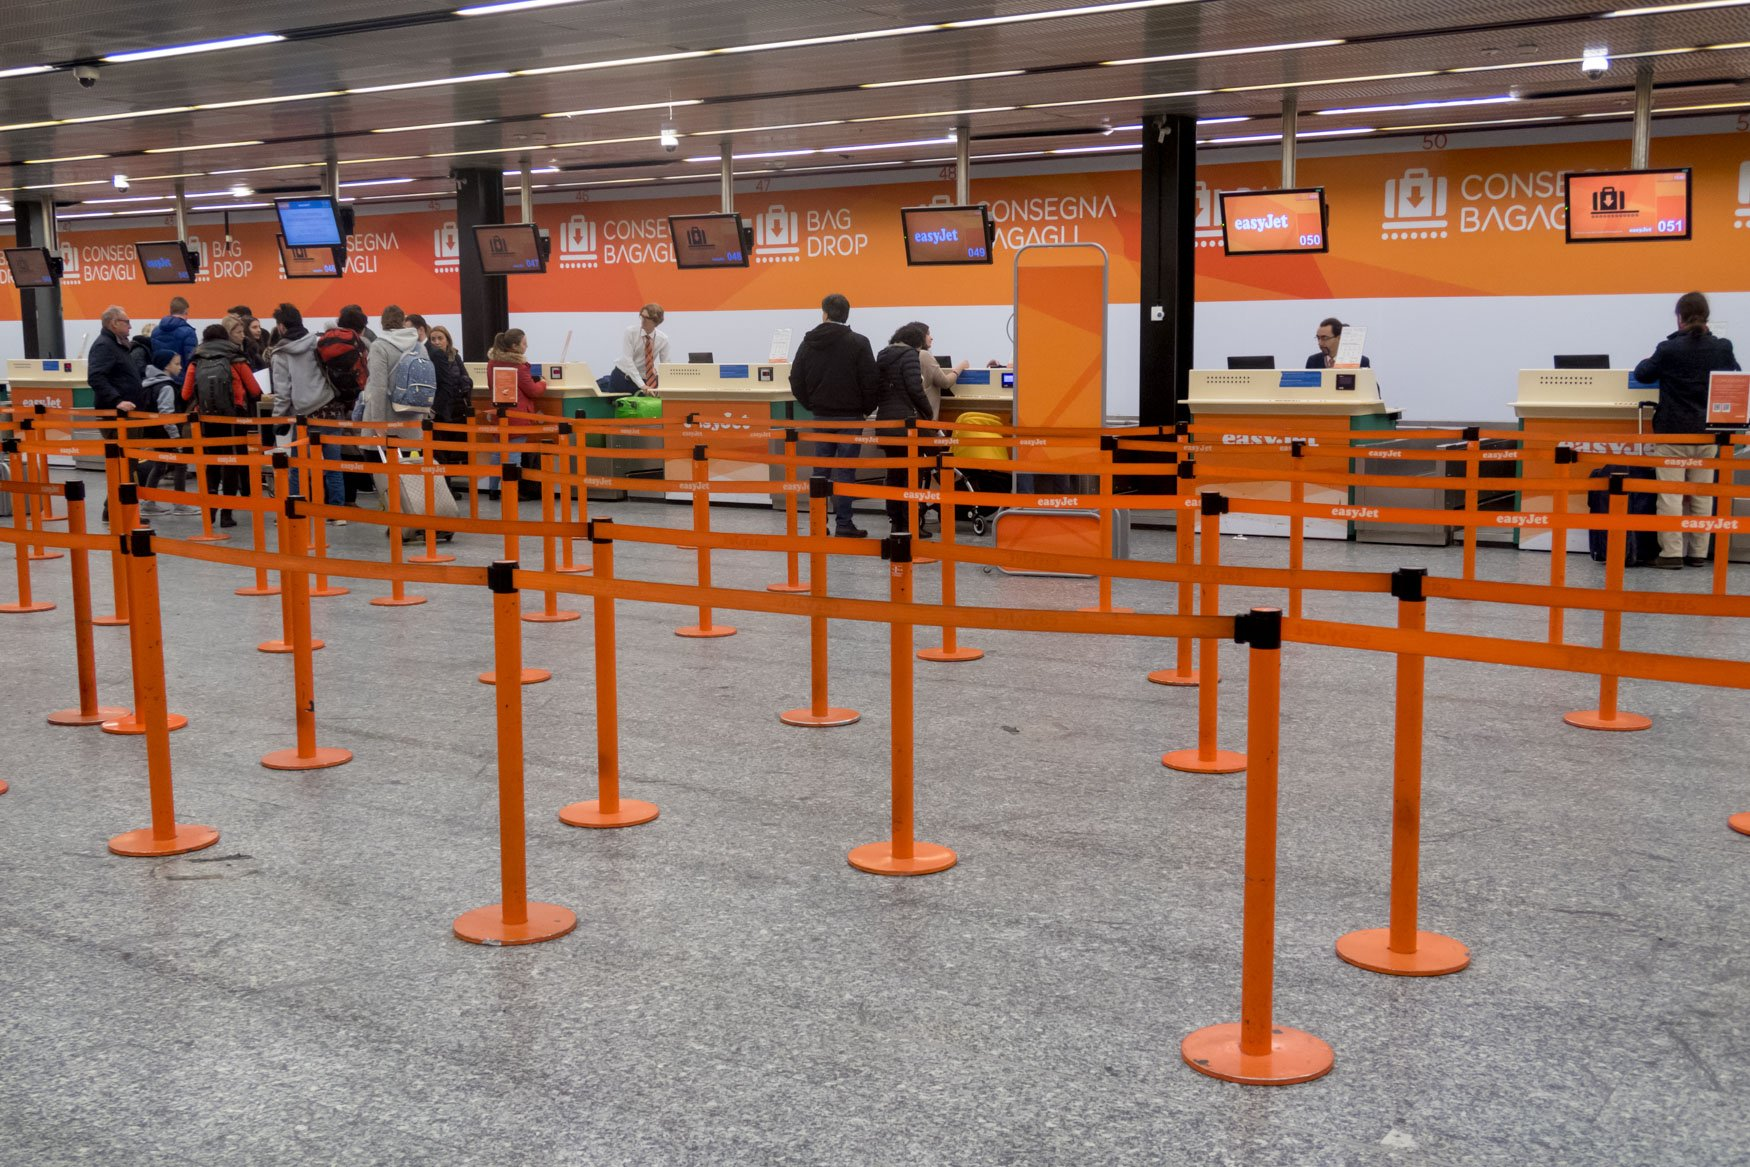 check in easyjet gatwick to milan - photo#21